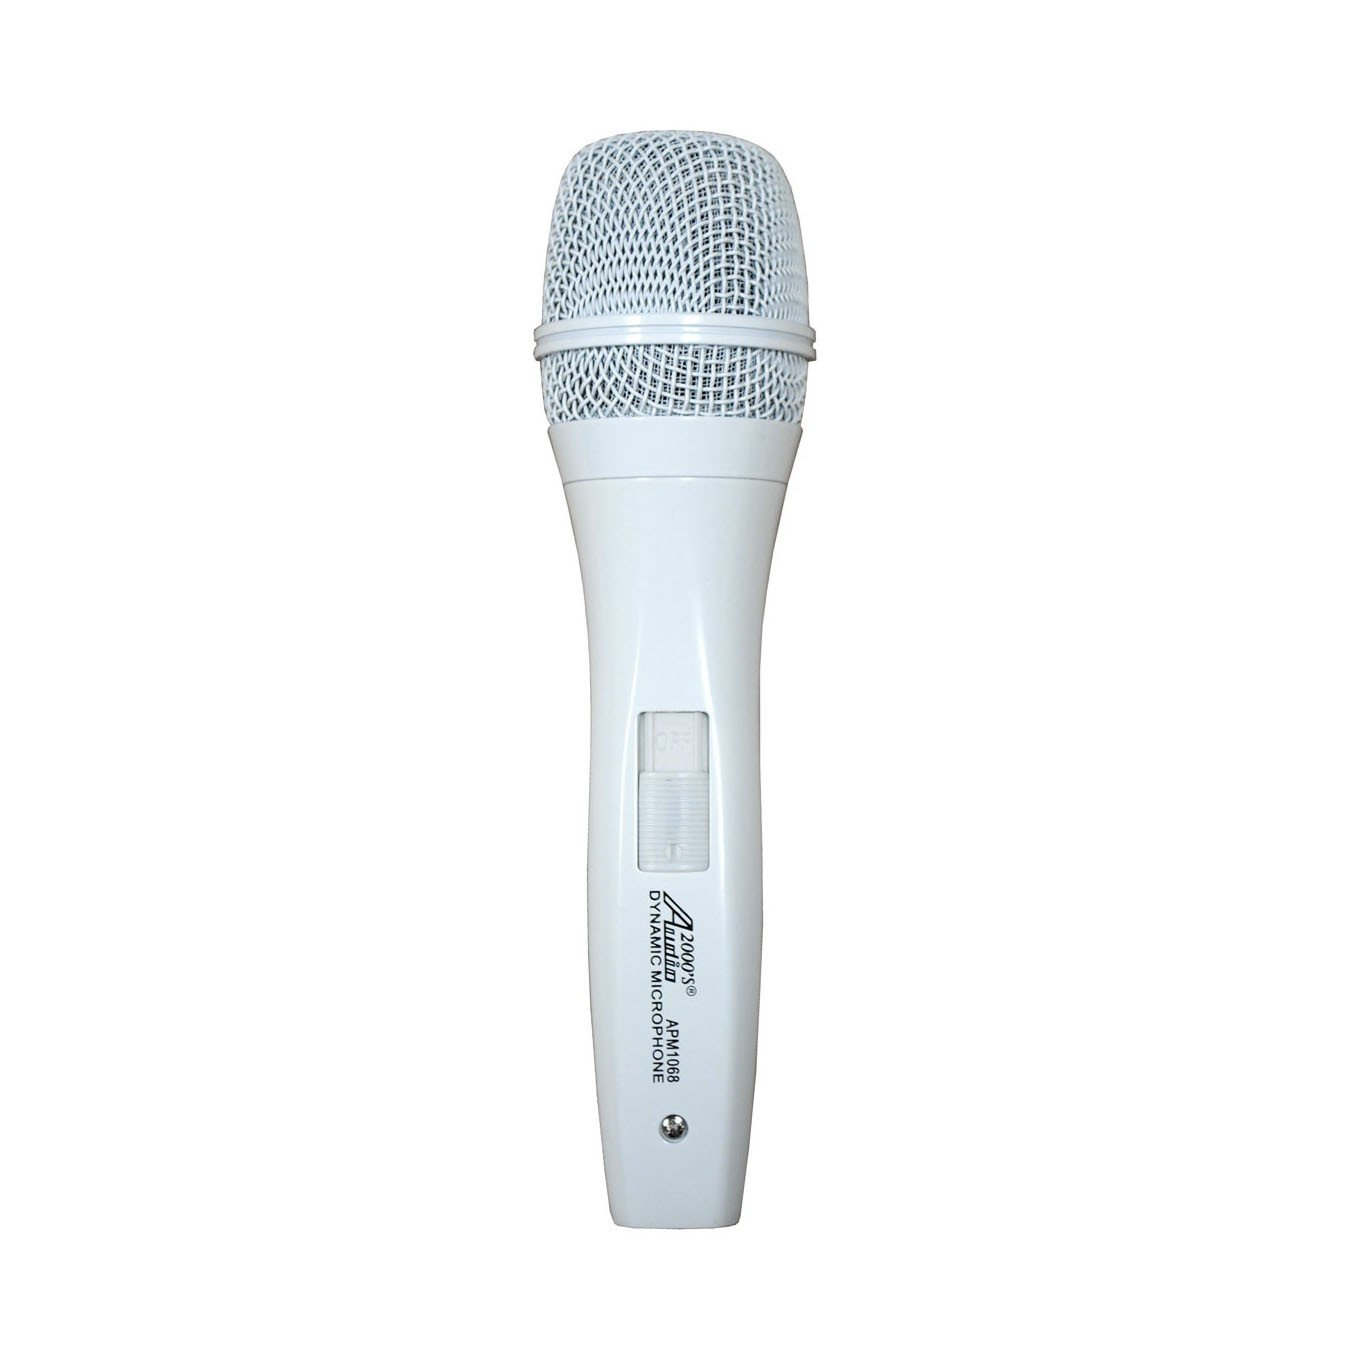 Audio 2000s APM1068 White Dynamic Vocal Microphone with On/Off Switch